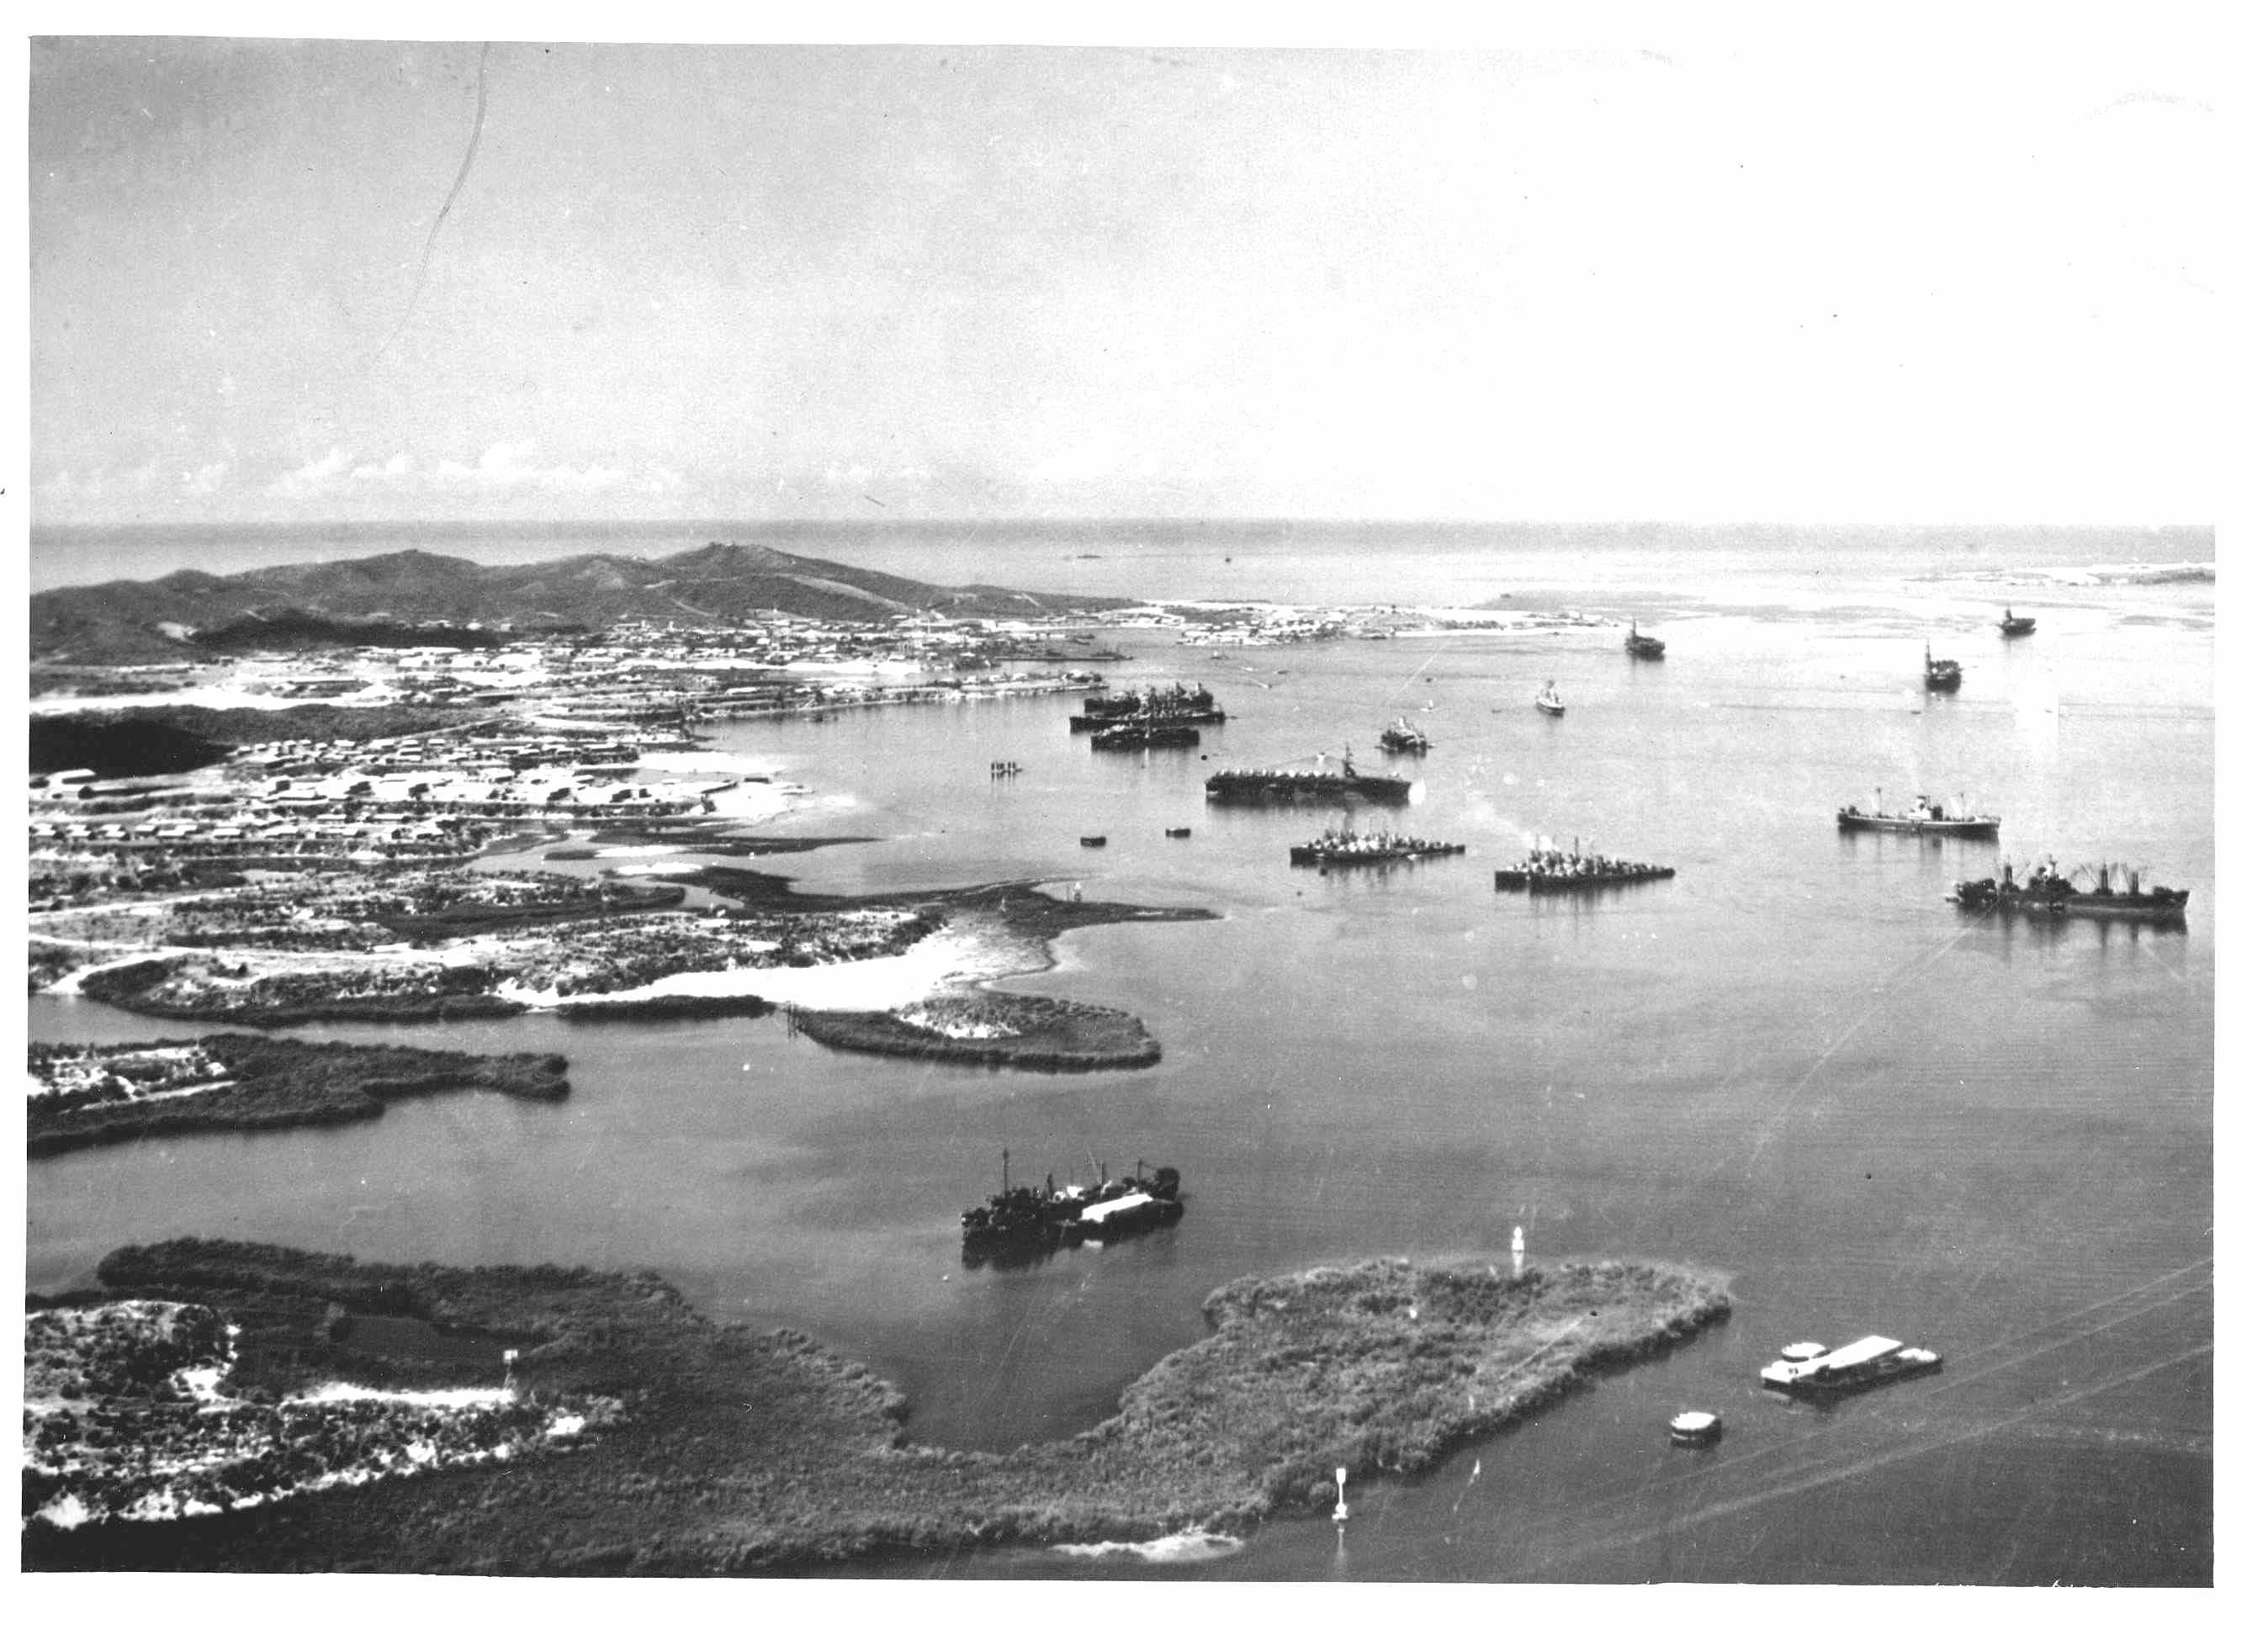 Aerial-view-bay-ships-bw